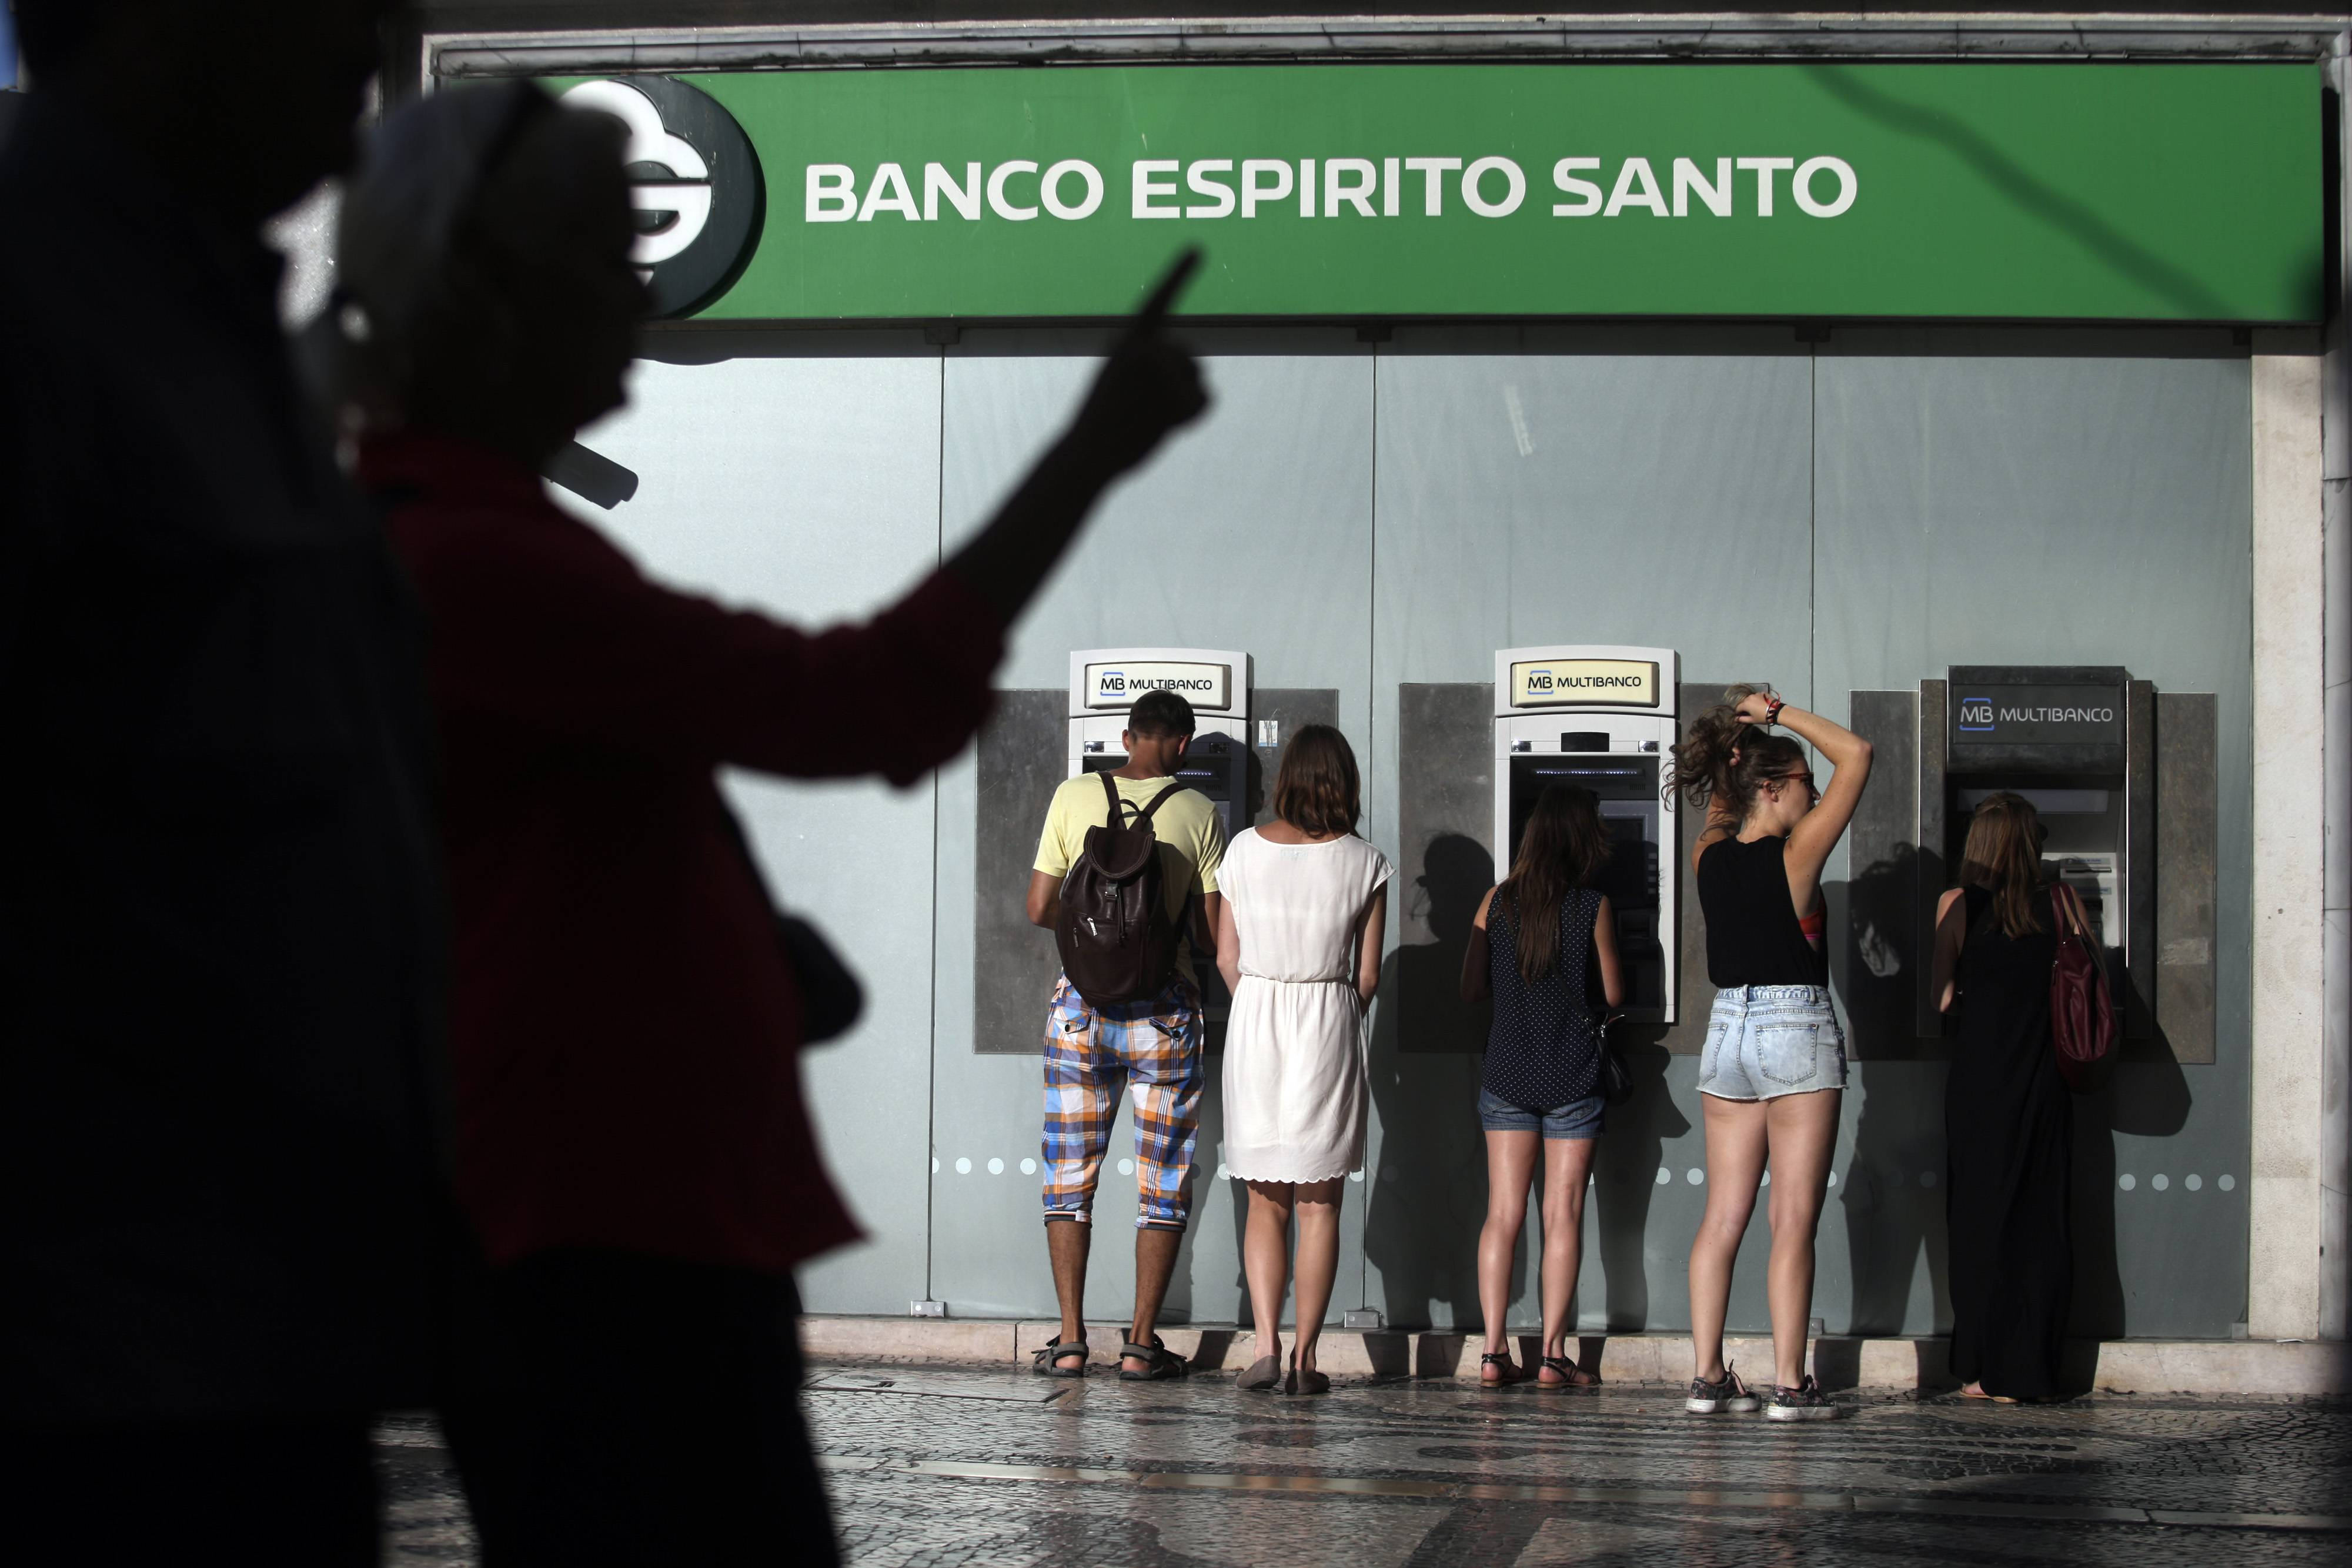 People use ATMs at a branch of Portuguese bank Banco Espirito Santo in Lisbon. The Espirito Santo family business survived wars, dictatorship, revolution and family feuds for almost 150 years. Now, one of Europe's last banking dynasties is being stripped of its wealth and influence amid accounting irregularities, huge unreported debts, and a police investigation.